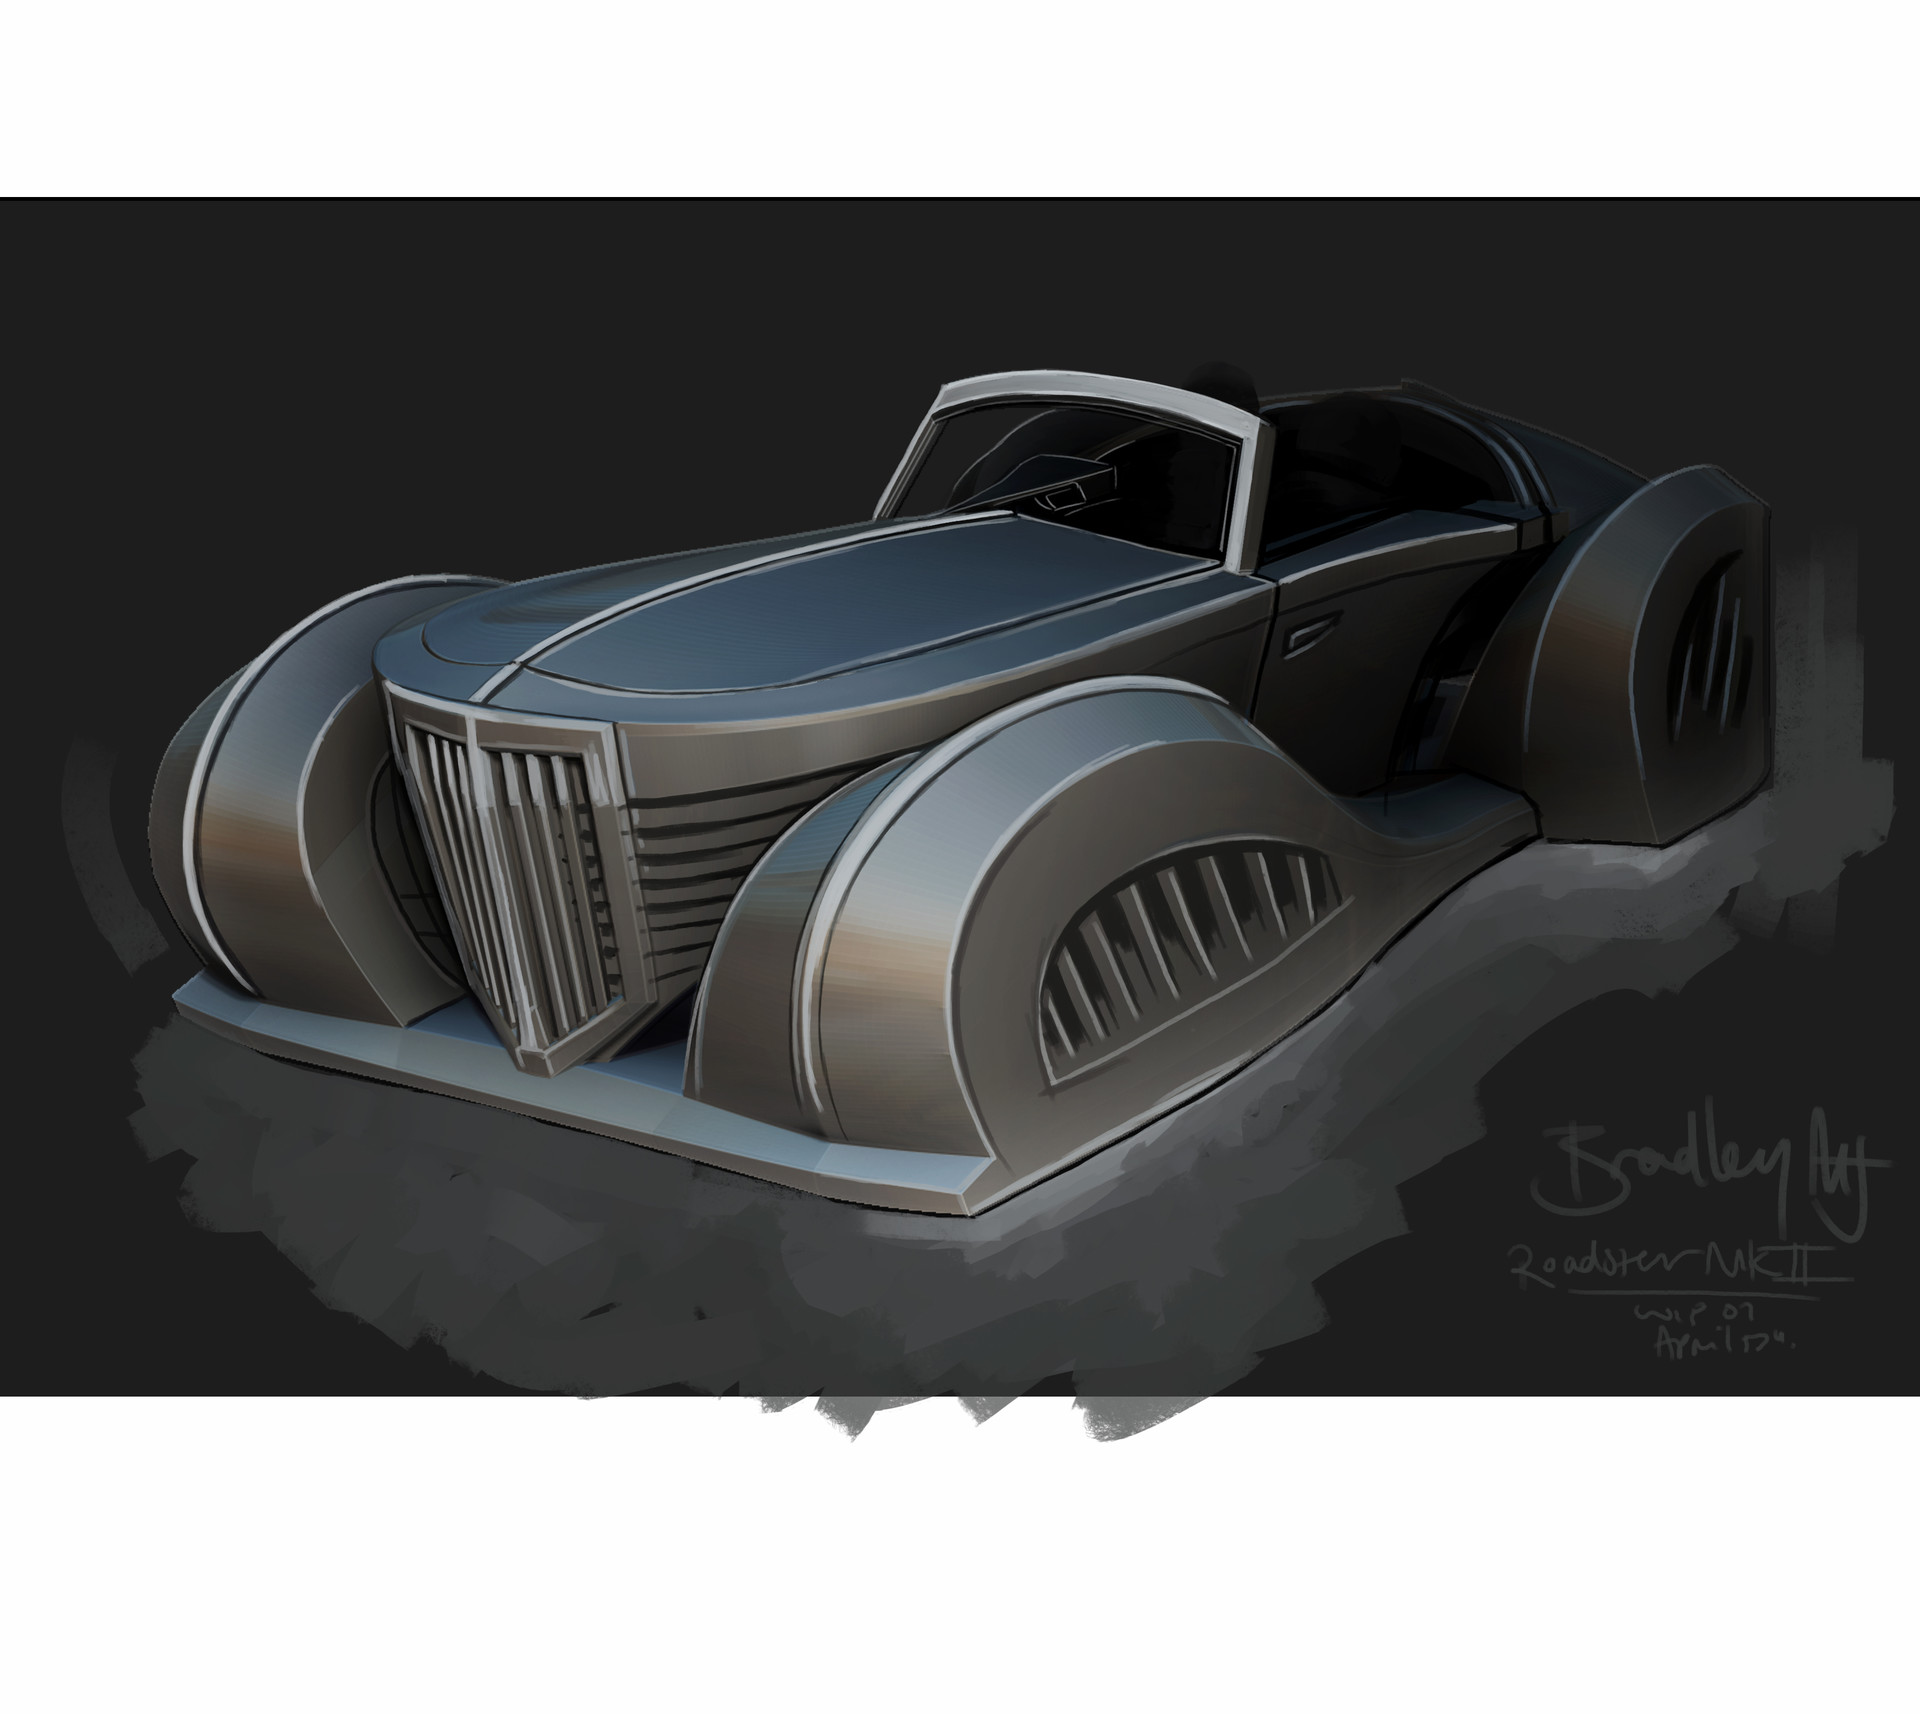 Bradley morgan johnson roadster mkii wip01 3qtr01